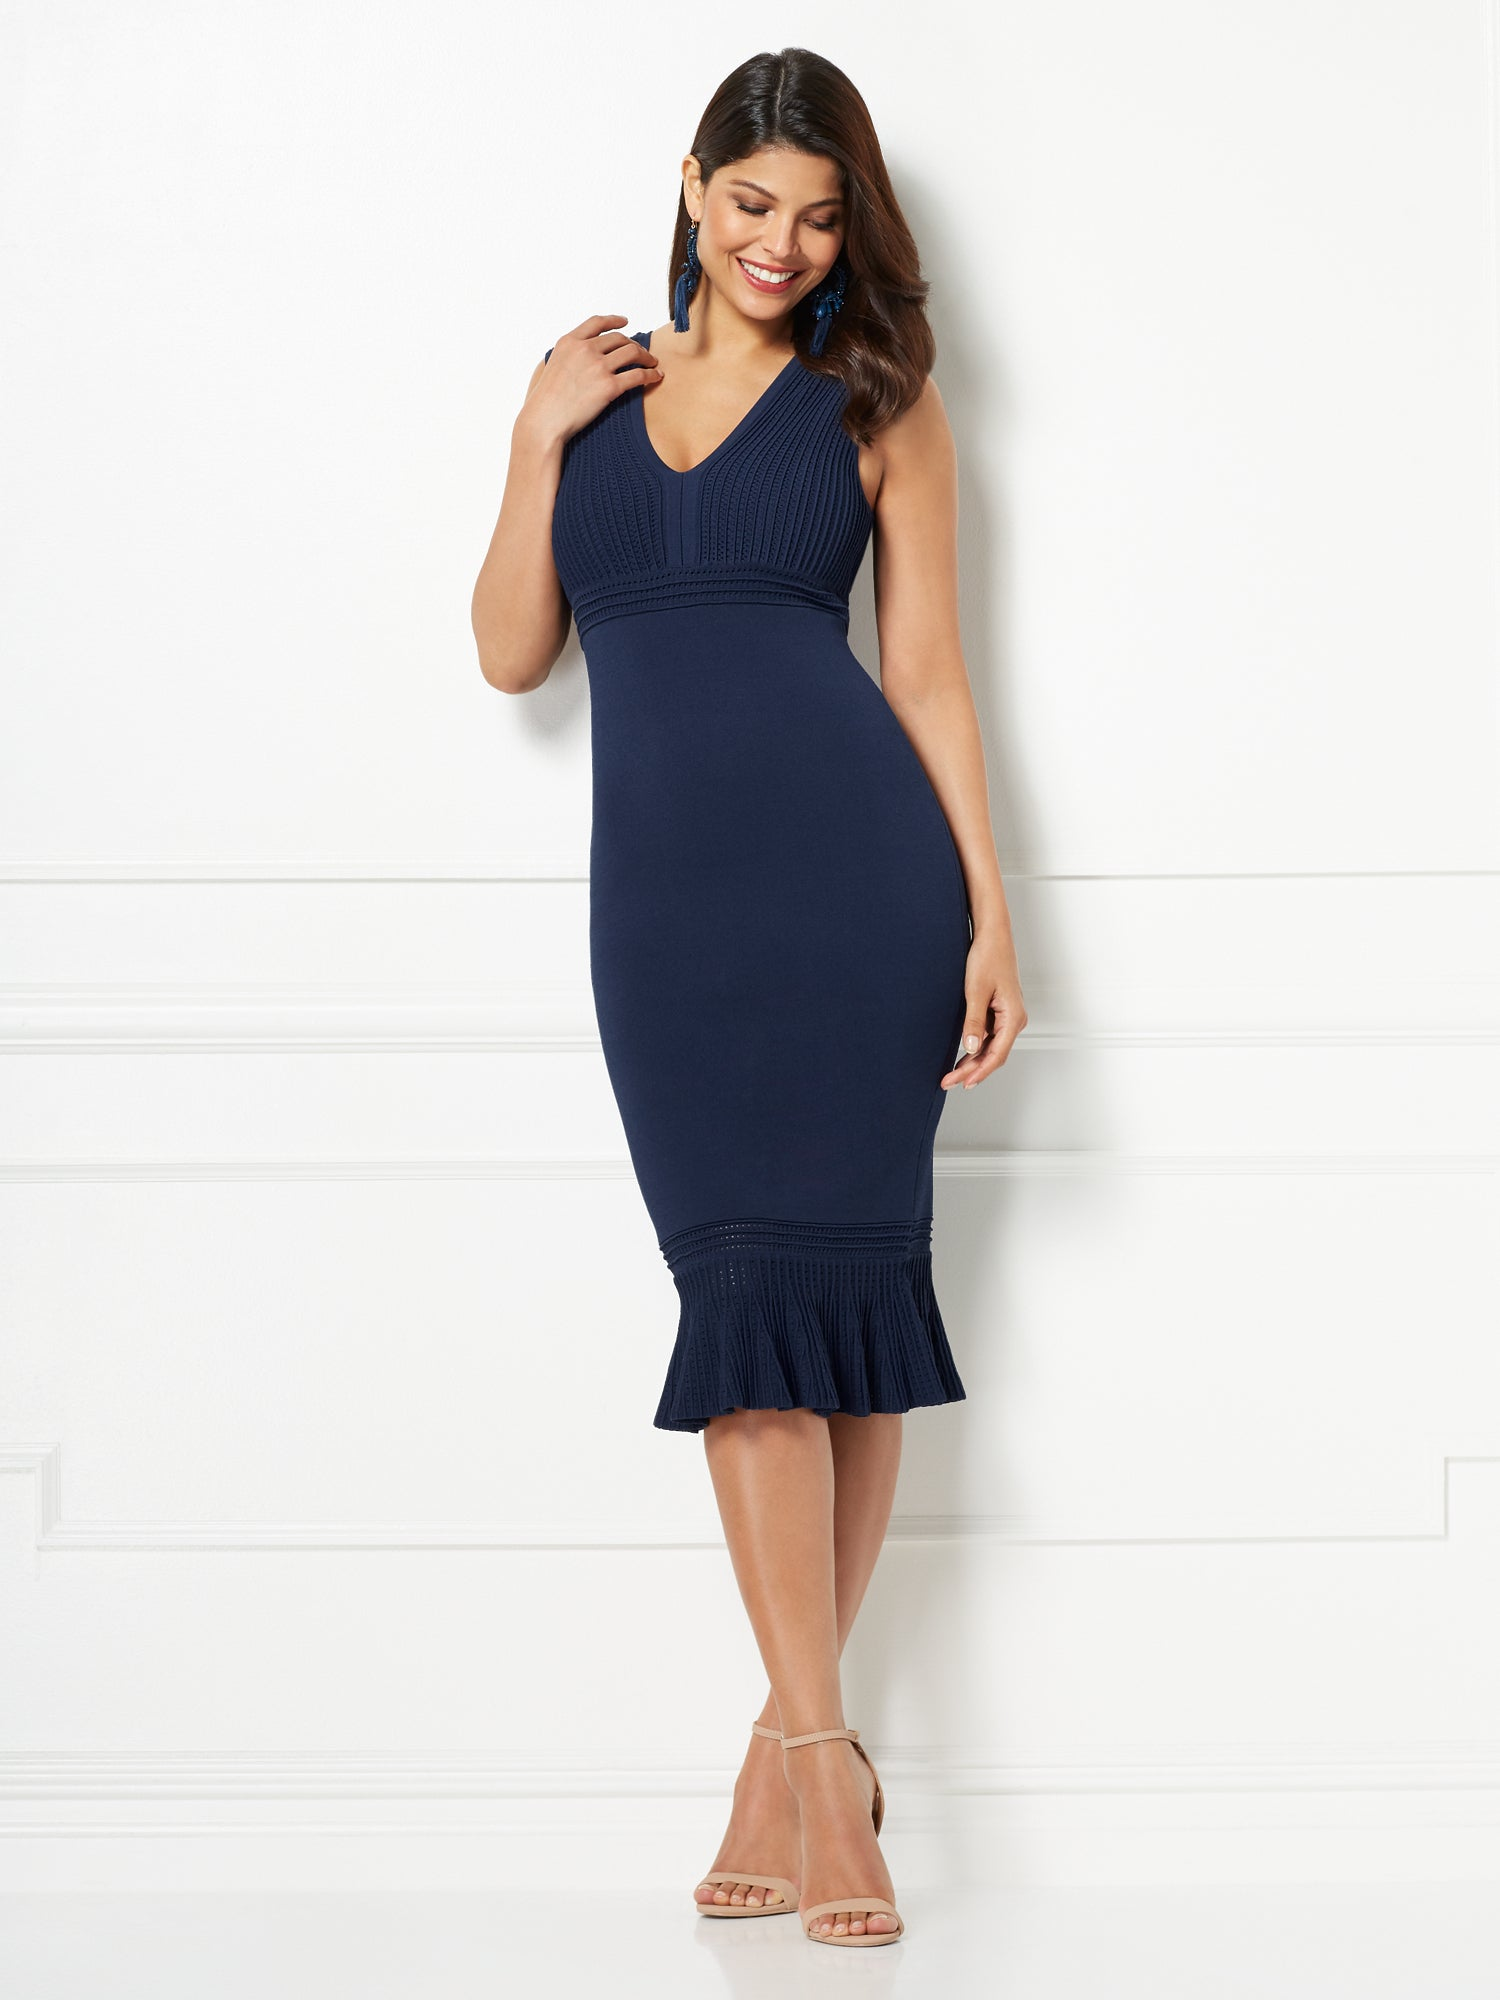 82711ccdac6 Eva Mendes Collection - Krista Sweater Dress in Dark Blue